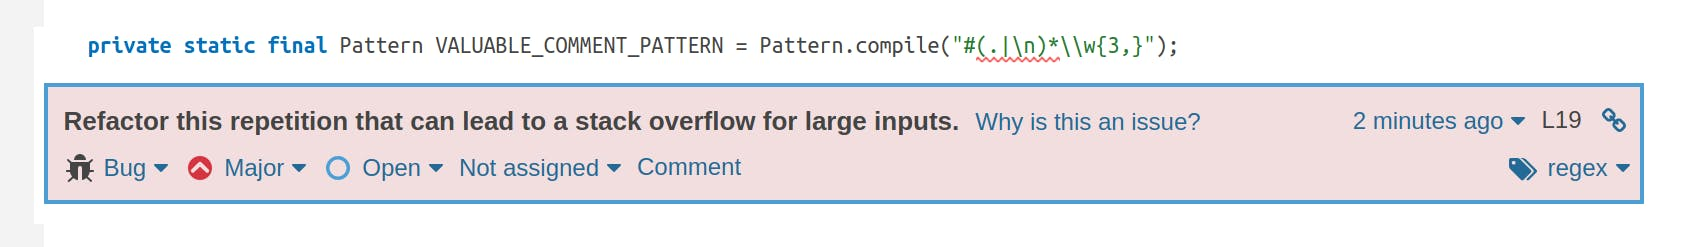 An issue is raised on a repetition in a regex which could lead to a stack overflow.